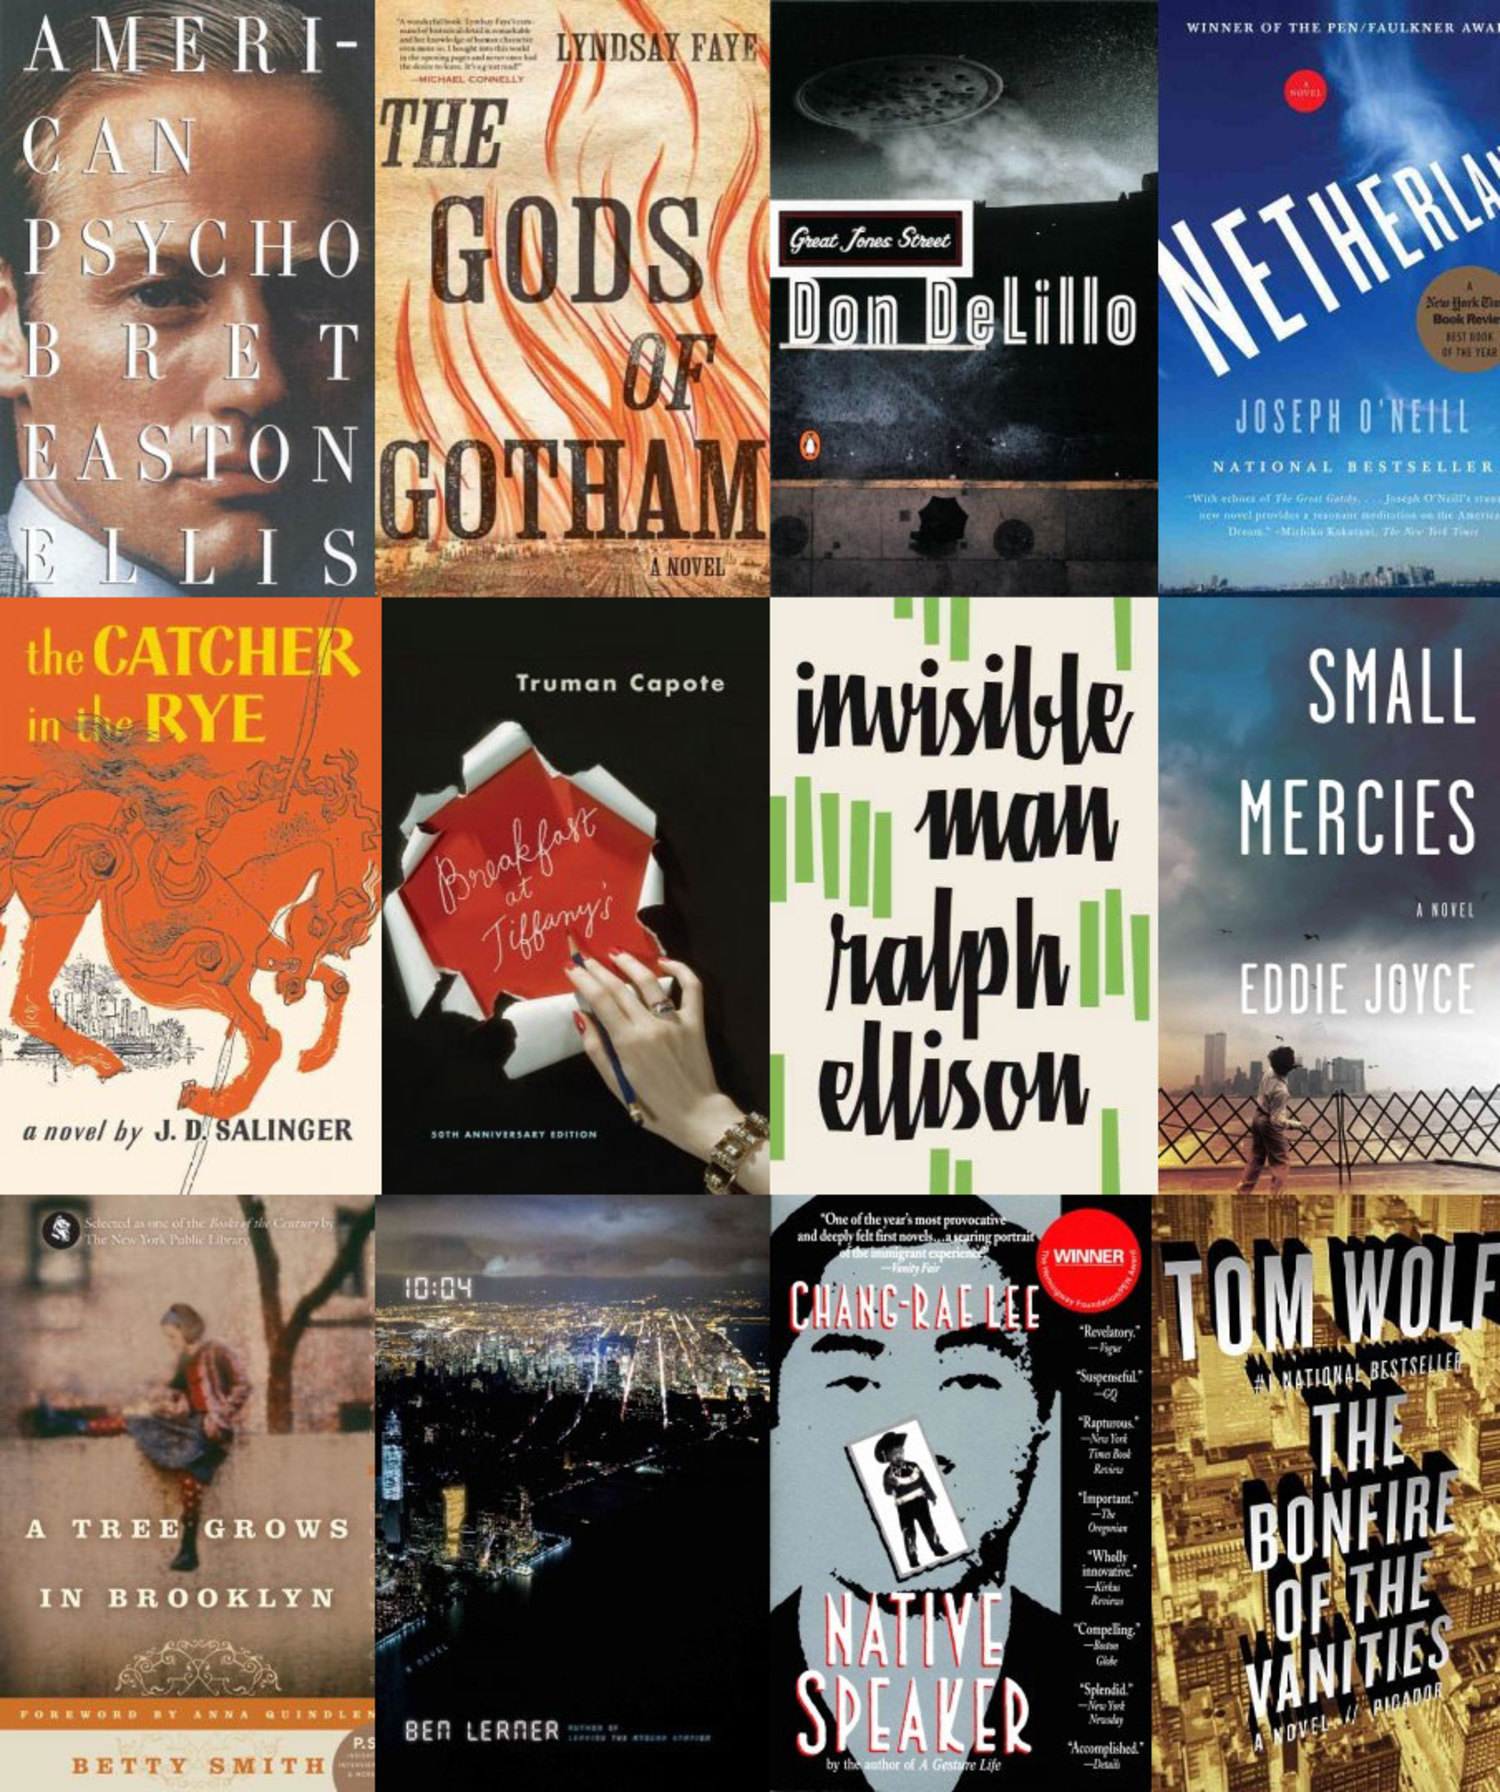 The Best New York City Novels by Neighborhood